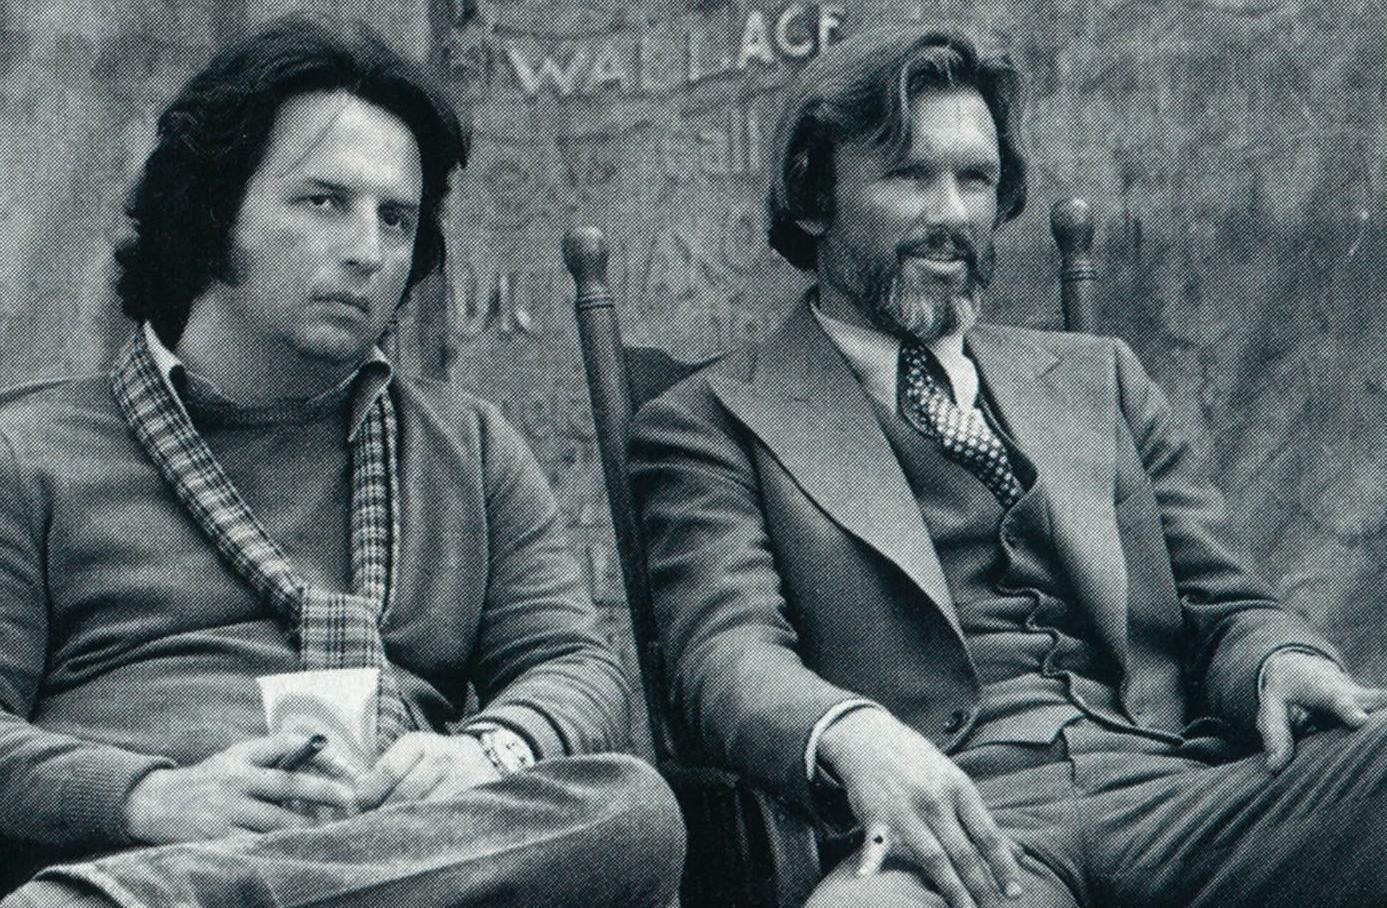 In 1980 Kristofferson and director Michael Cimino hit a low with Heaven's Gate.